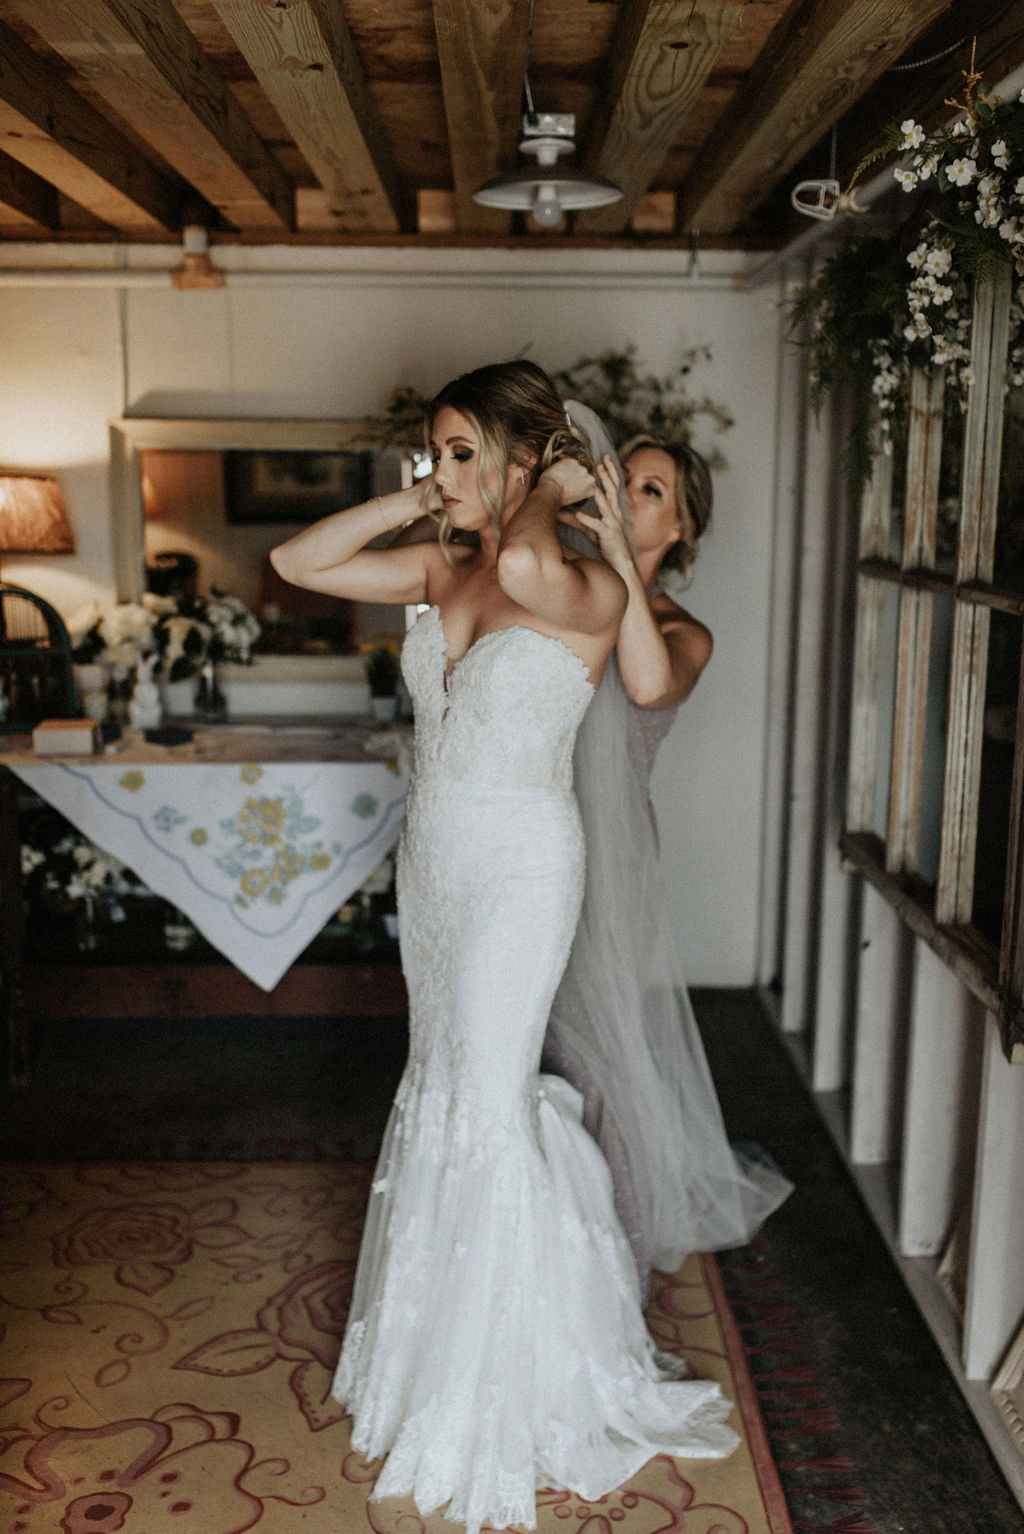 A bride and her mom getting ready for her wedding day